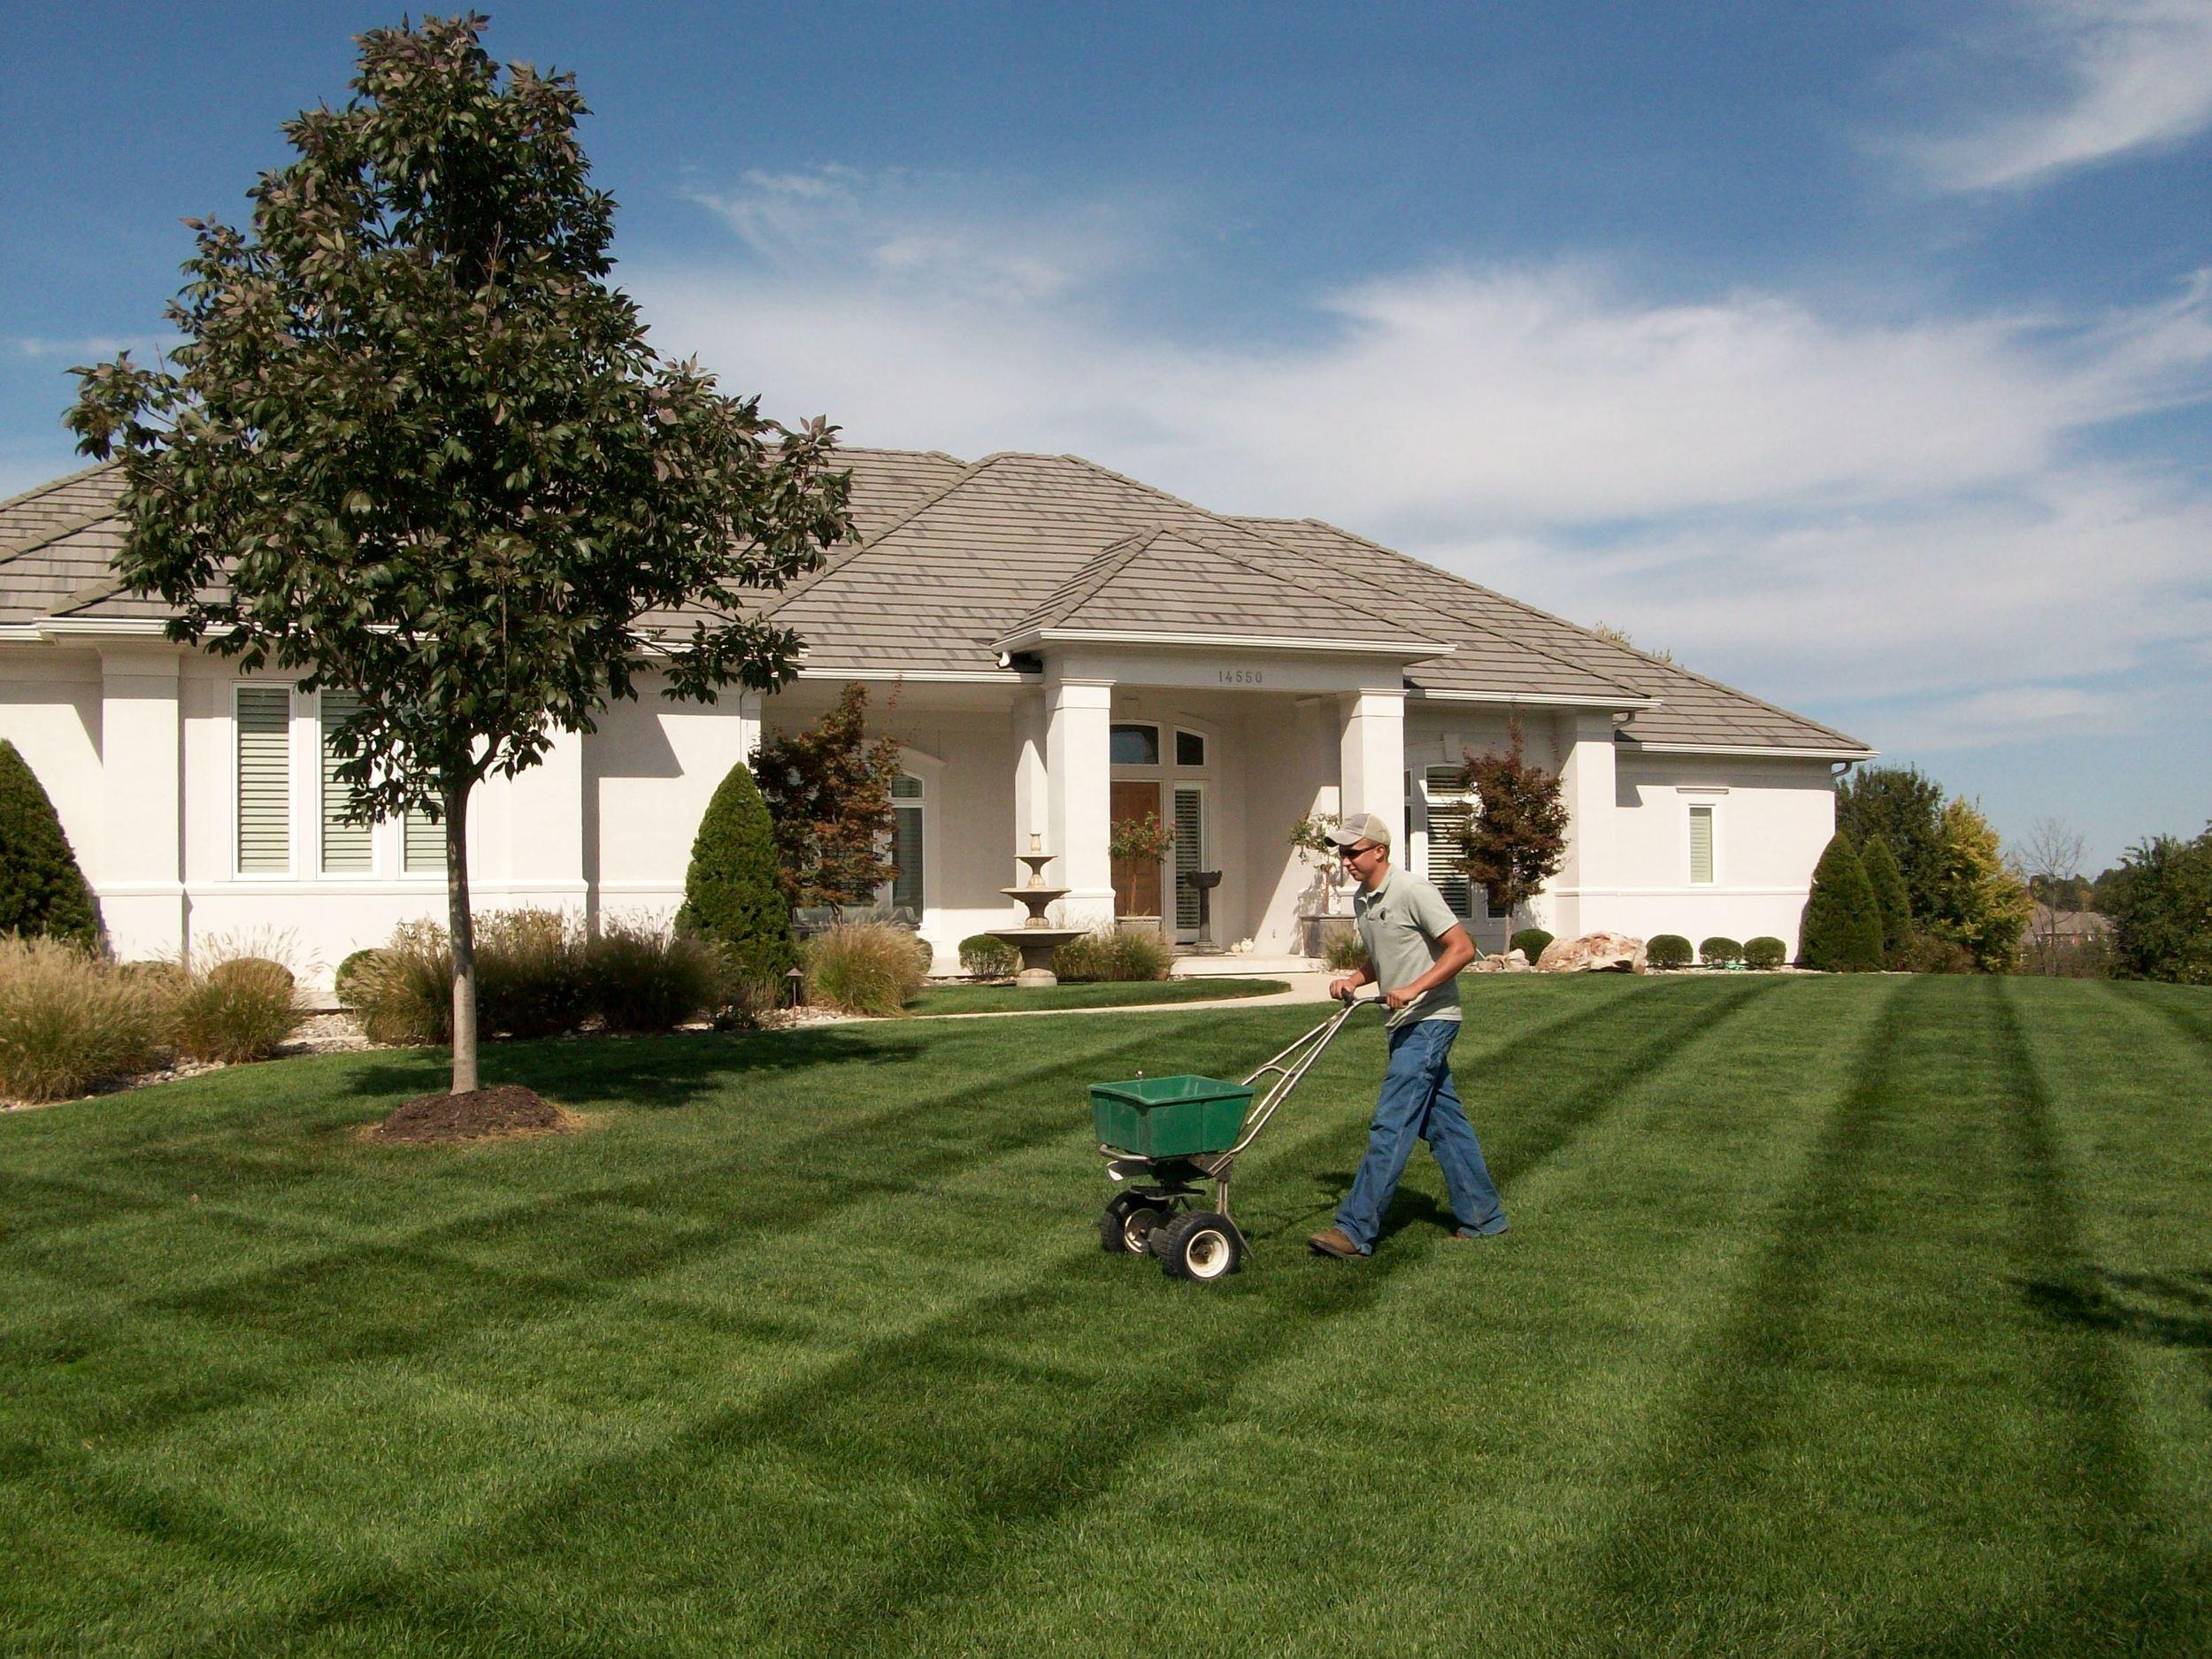 Nutrients can come from lawn fertilizer washed away by rain.